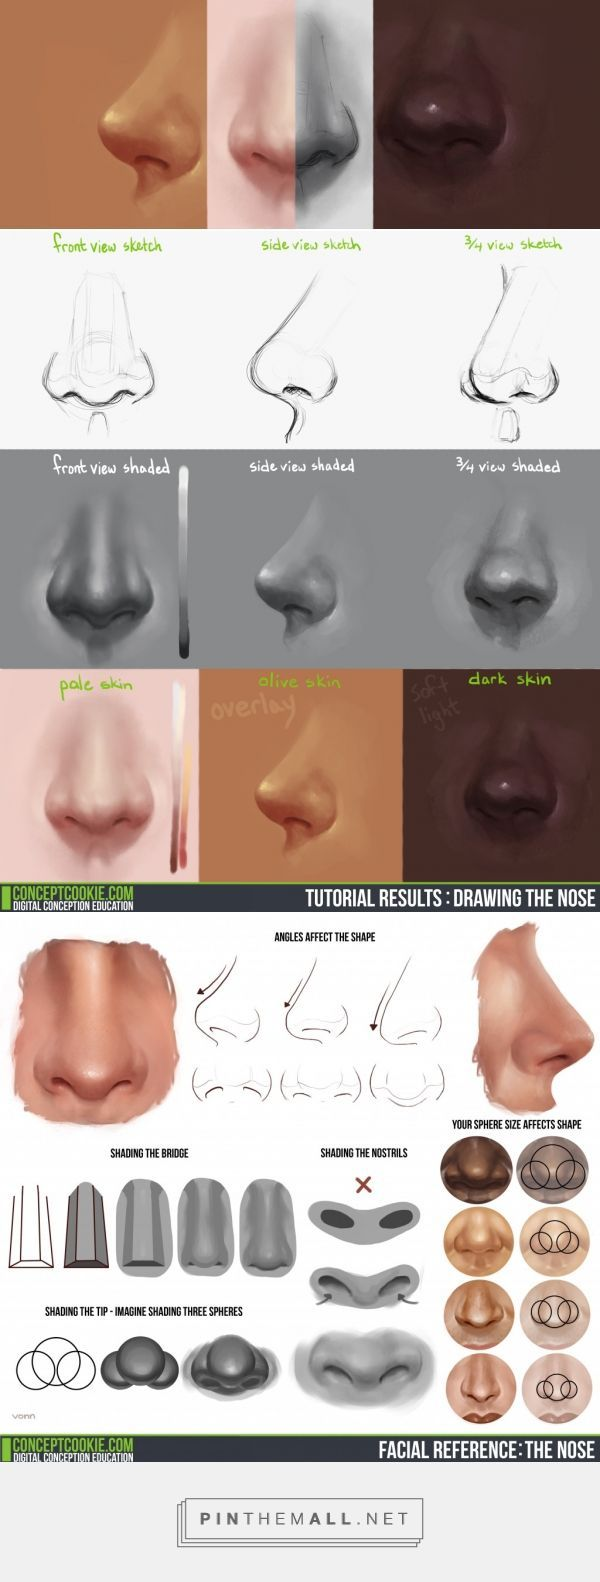 Tim Von Rueden takes you through drawing the nose in a front, side, and ¾ view: http://conceptcookie.tumblr.com/post/87229828821/drawing-the-nose-vi... ★ || CHARACTER DESIGN REFERENCES (https://www.facebook.com/CharacterDesignReferences & https://www.pinterest.com/characterdesigh) • Love Character Design? Join the #CDChallenge (link→ https://www.facebook.com/groups/CharacterDesignChallenge) nose drawing  || ★